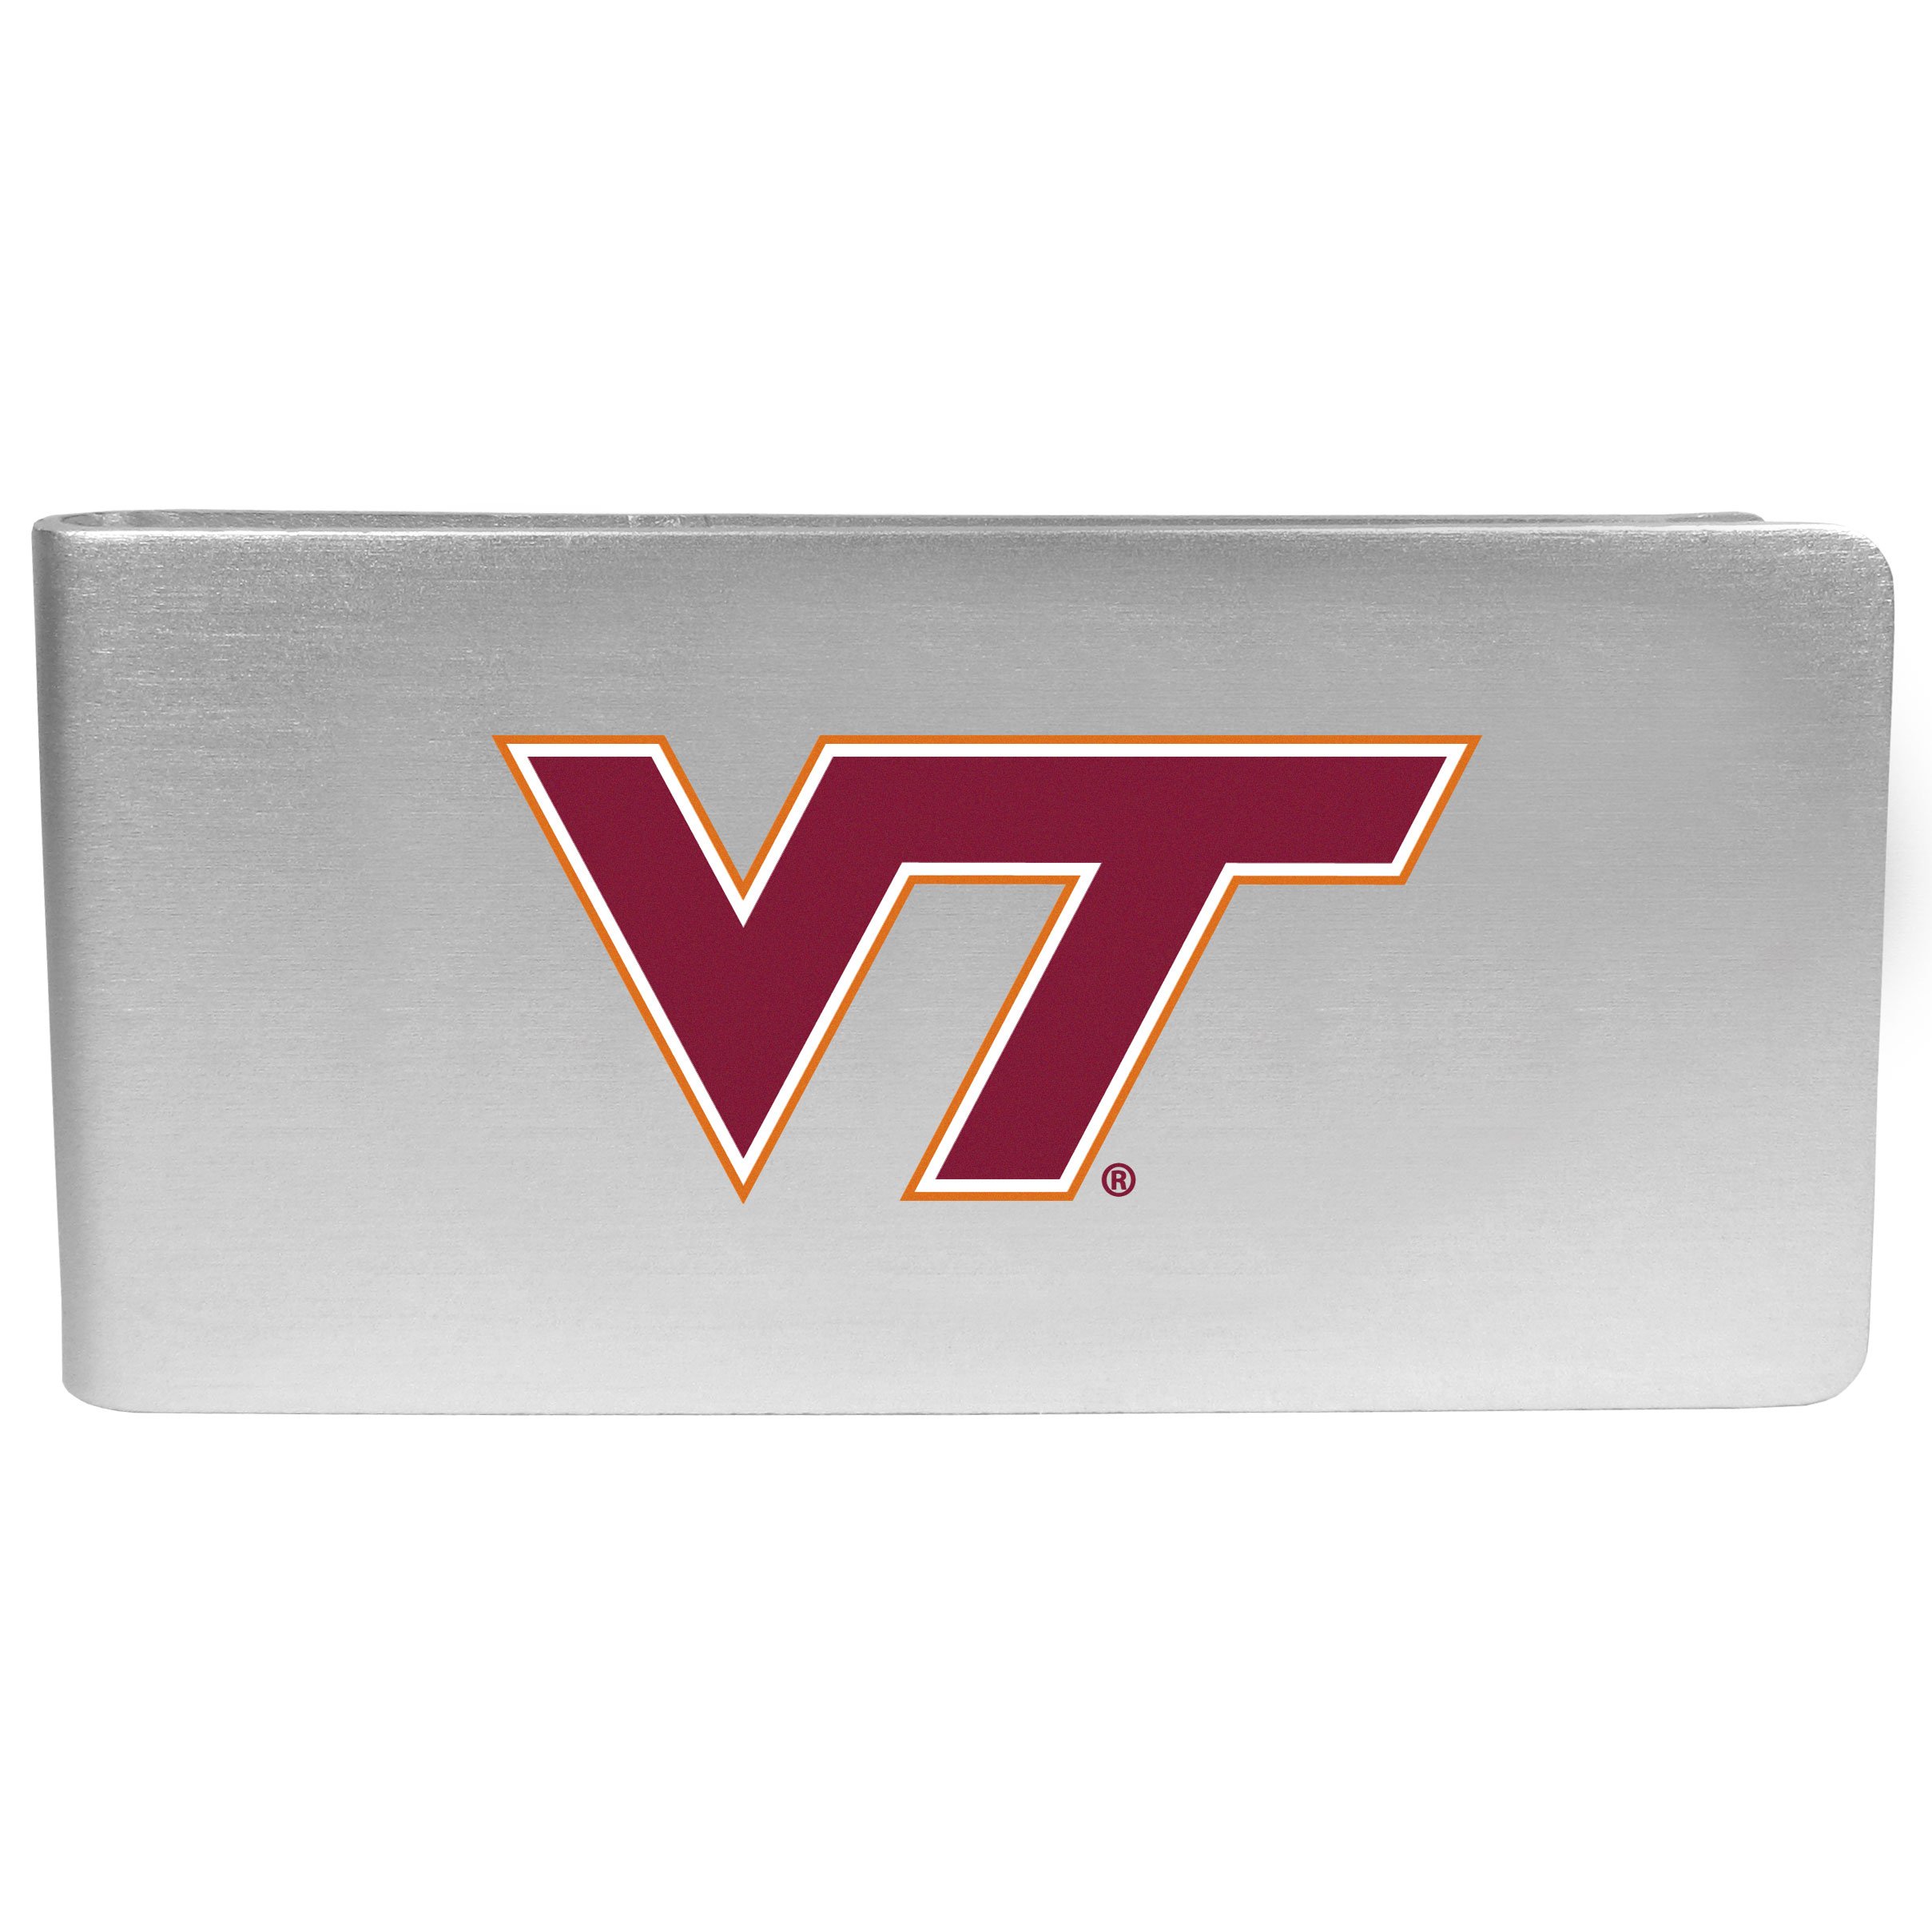 Virginia Tech Hokies Logo Money Clip - Our brushed metal money clip has classic style and functionality. The attractive clip features the Virginia Tech Hokies logo expertly printed on front.